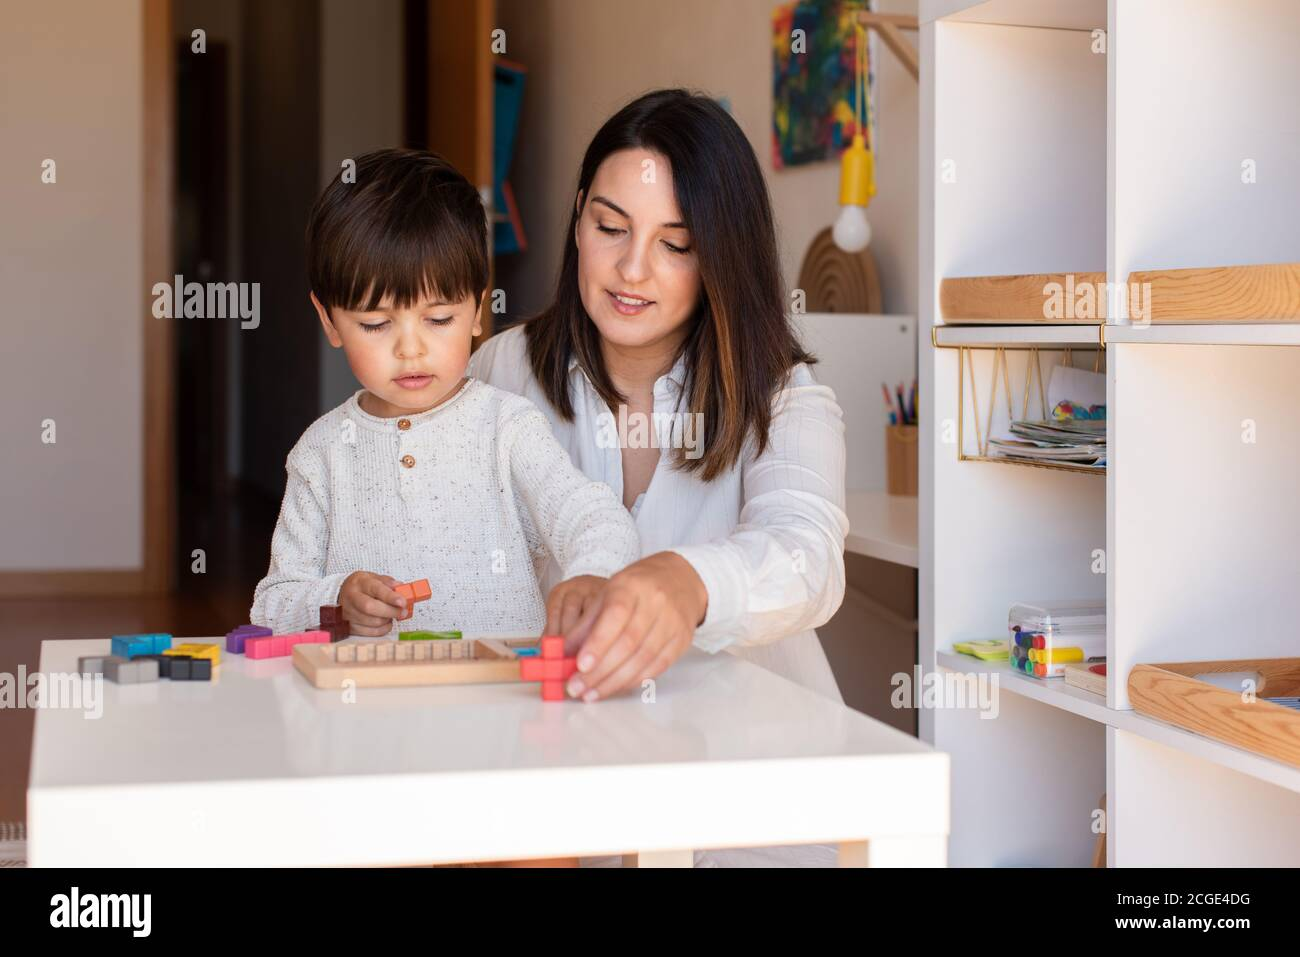 Lillte Kid playing with a tetris wood puzzle and mother or teacher help. Homeshooling. Learning Community. Montessori School Stock Photo